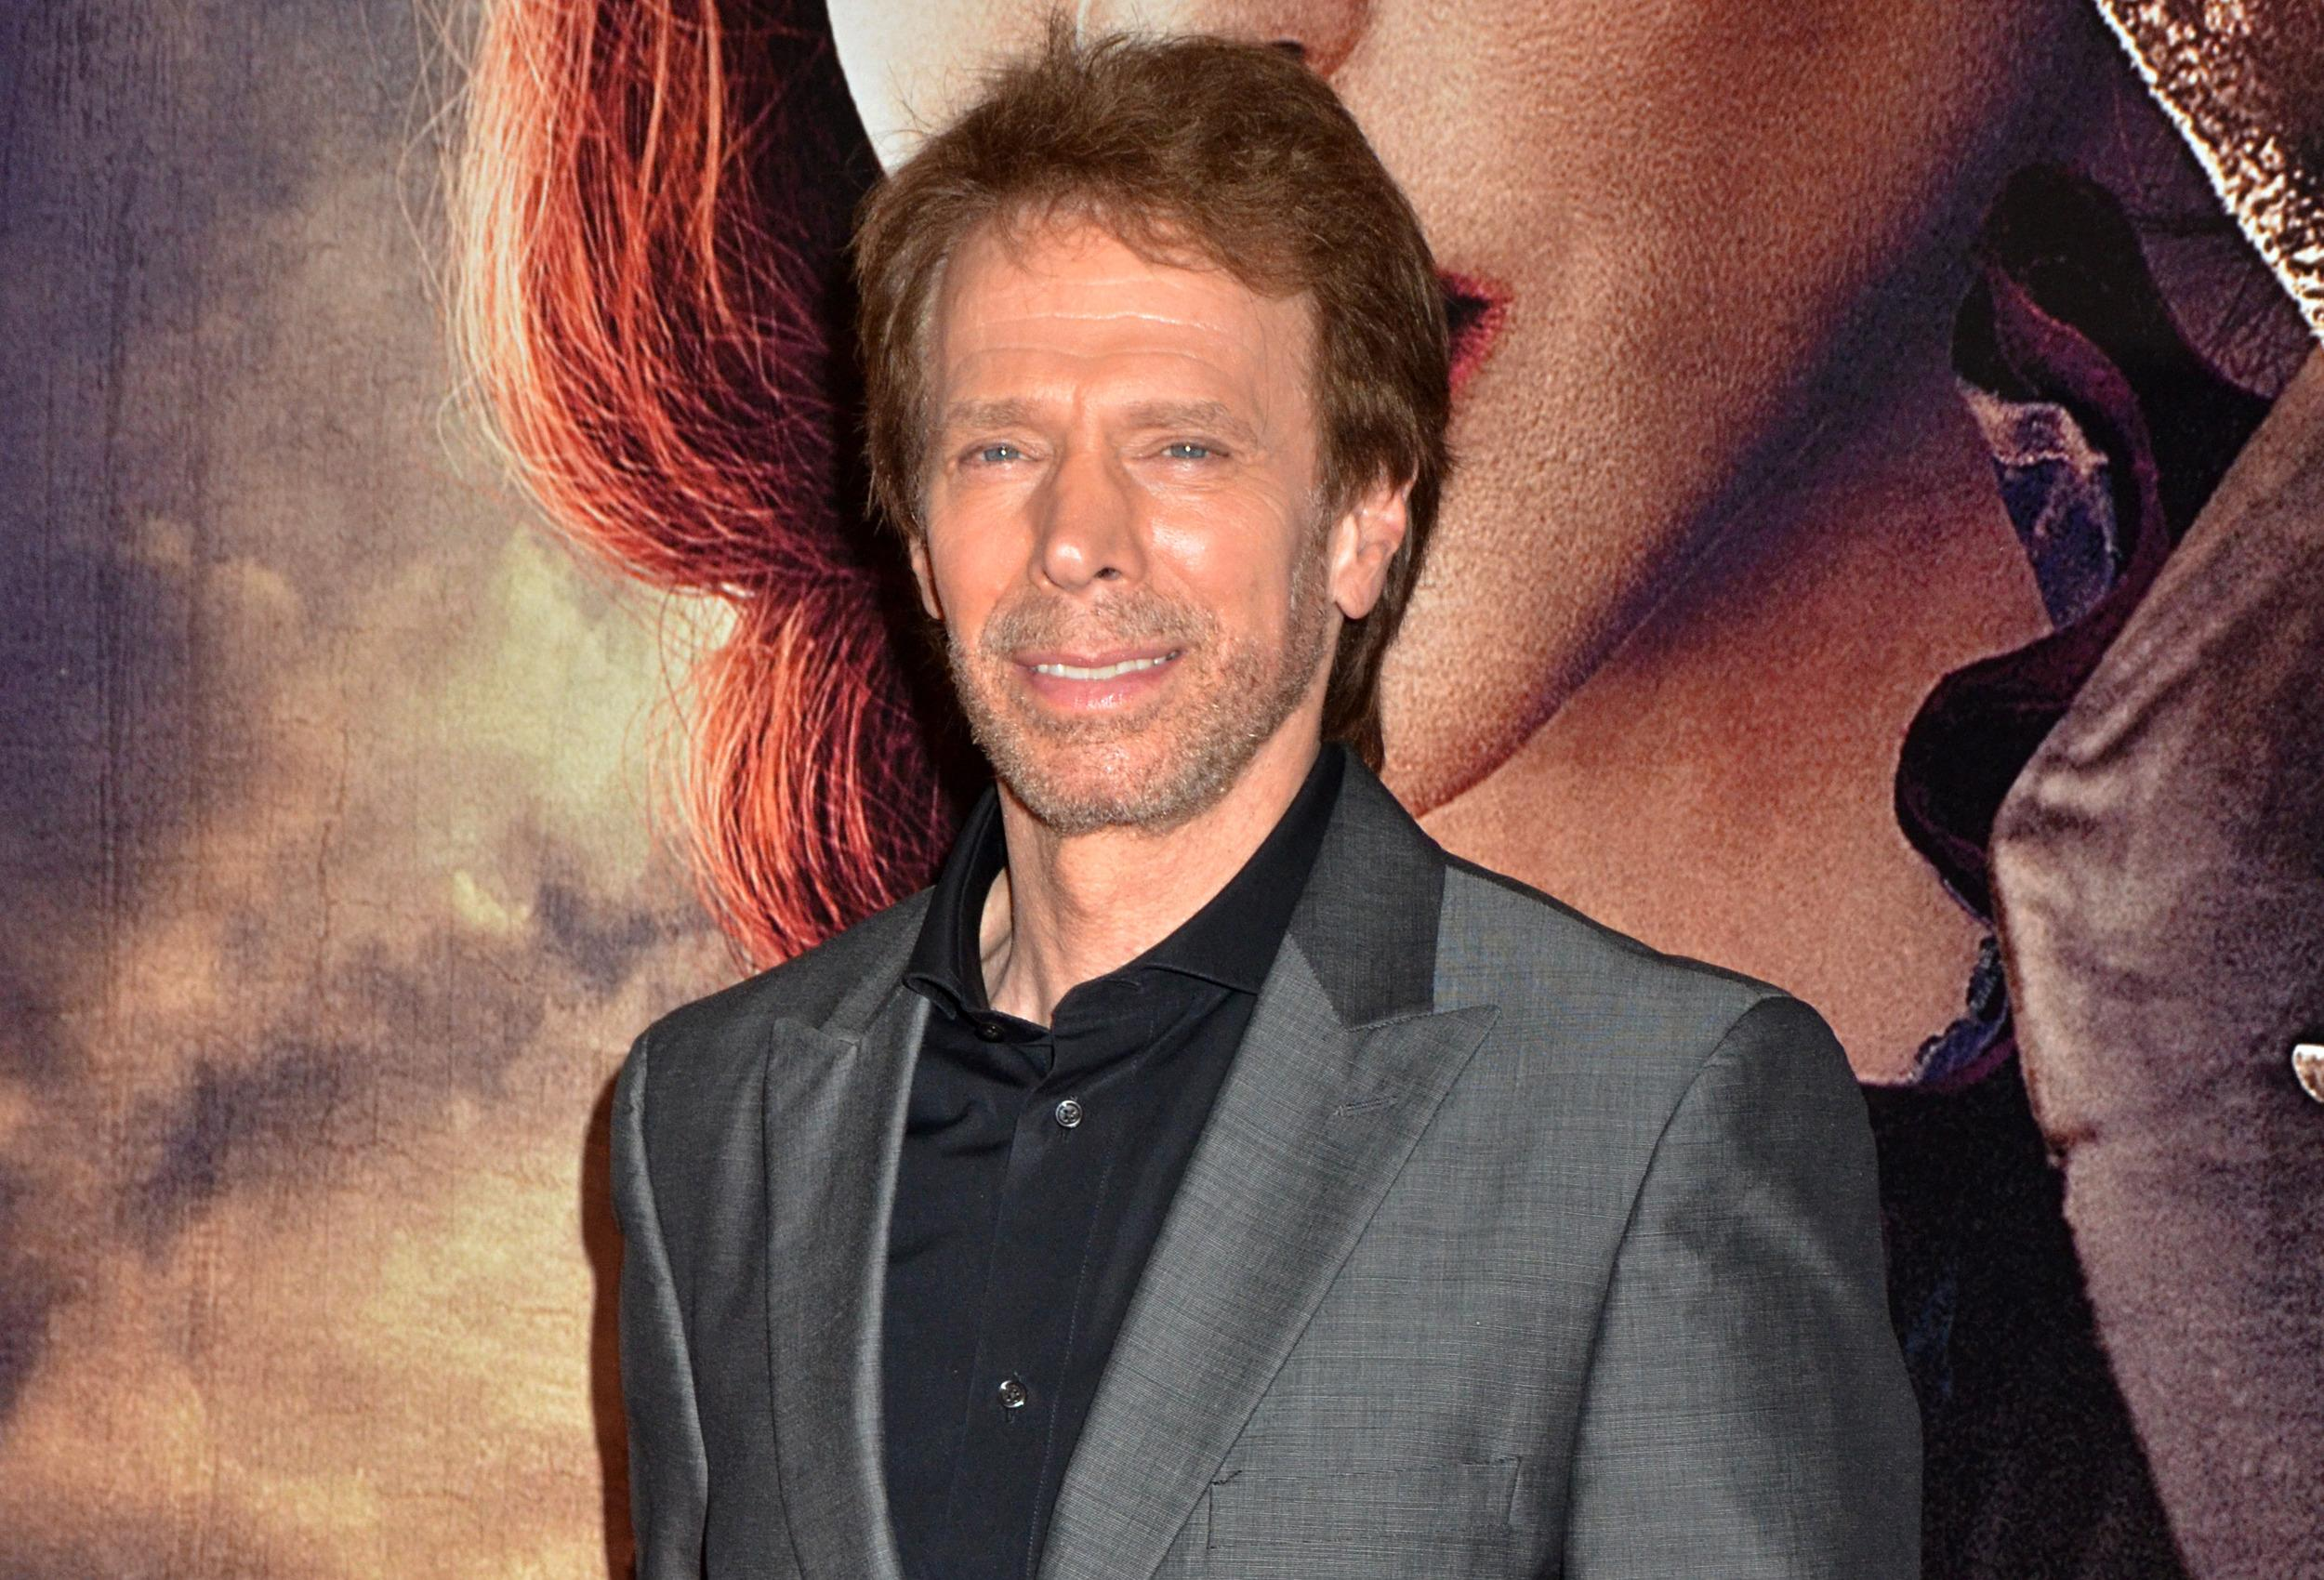 Making $80 million this year, Bruckheimer's ability to produce Hollywood hits is certainly paying off. Having a back-catalogue that features the Pirates of the Caribbean franchise doesn't hurt. However, he could do with another mega-hit soon as he's down from fourth place on the list last year when he made $35 million more.